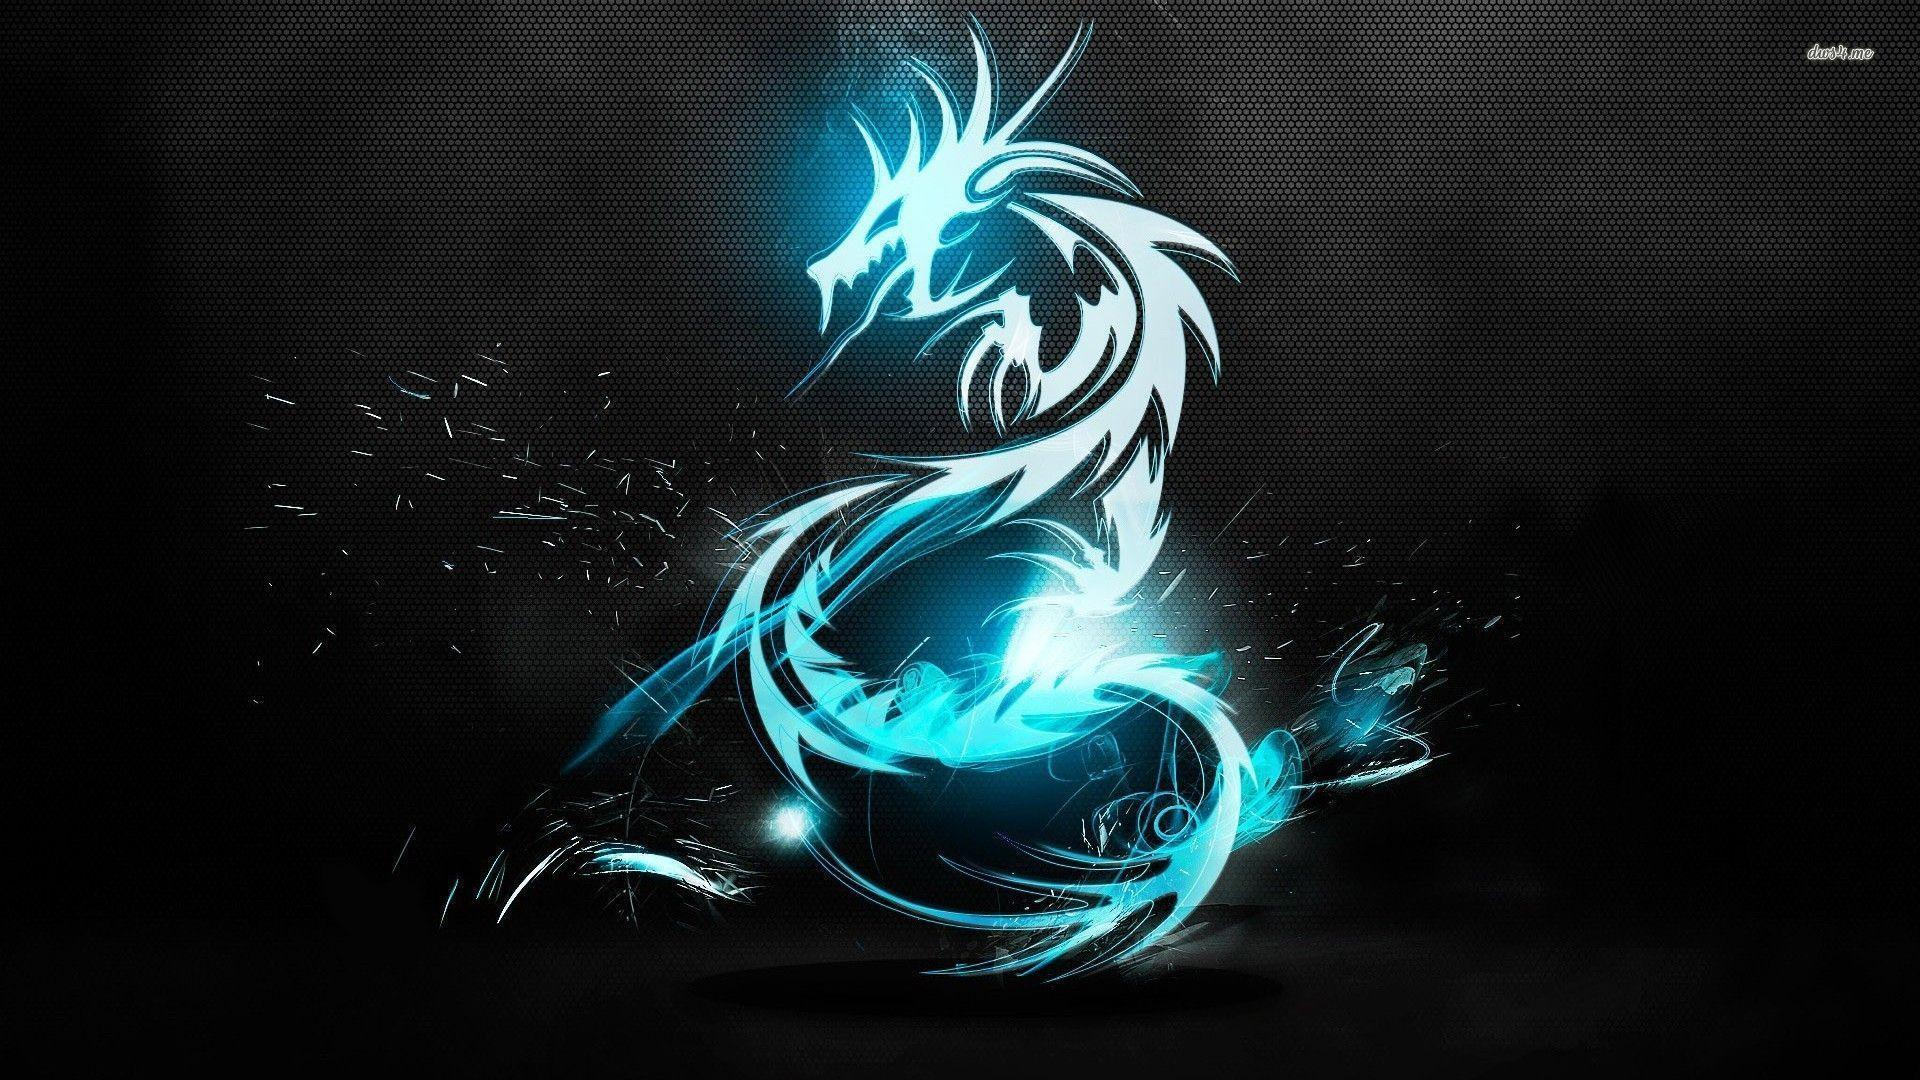 HD Dragon Wallpapers 1920x1080